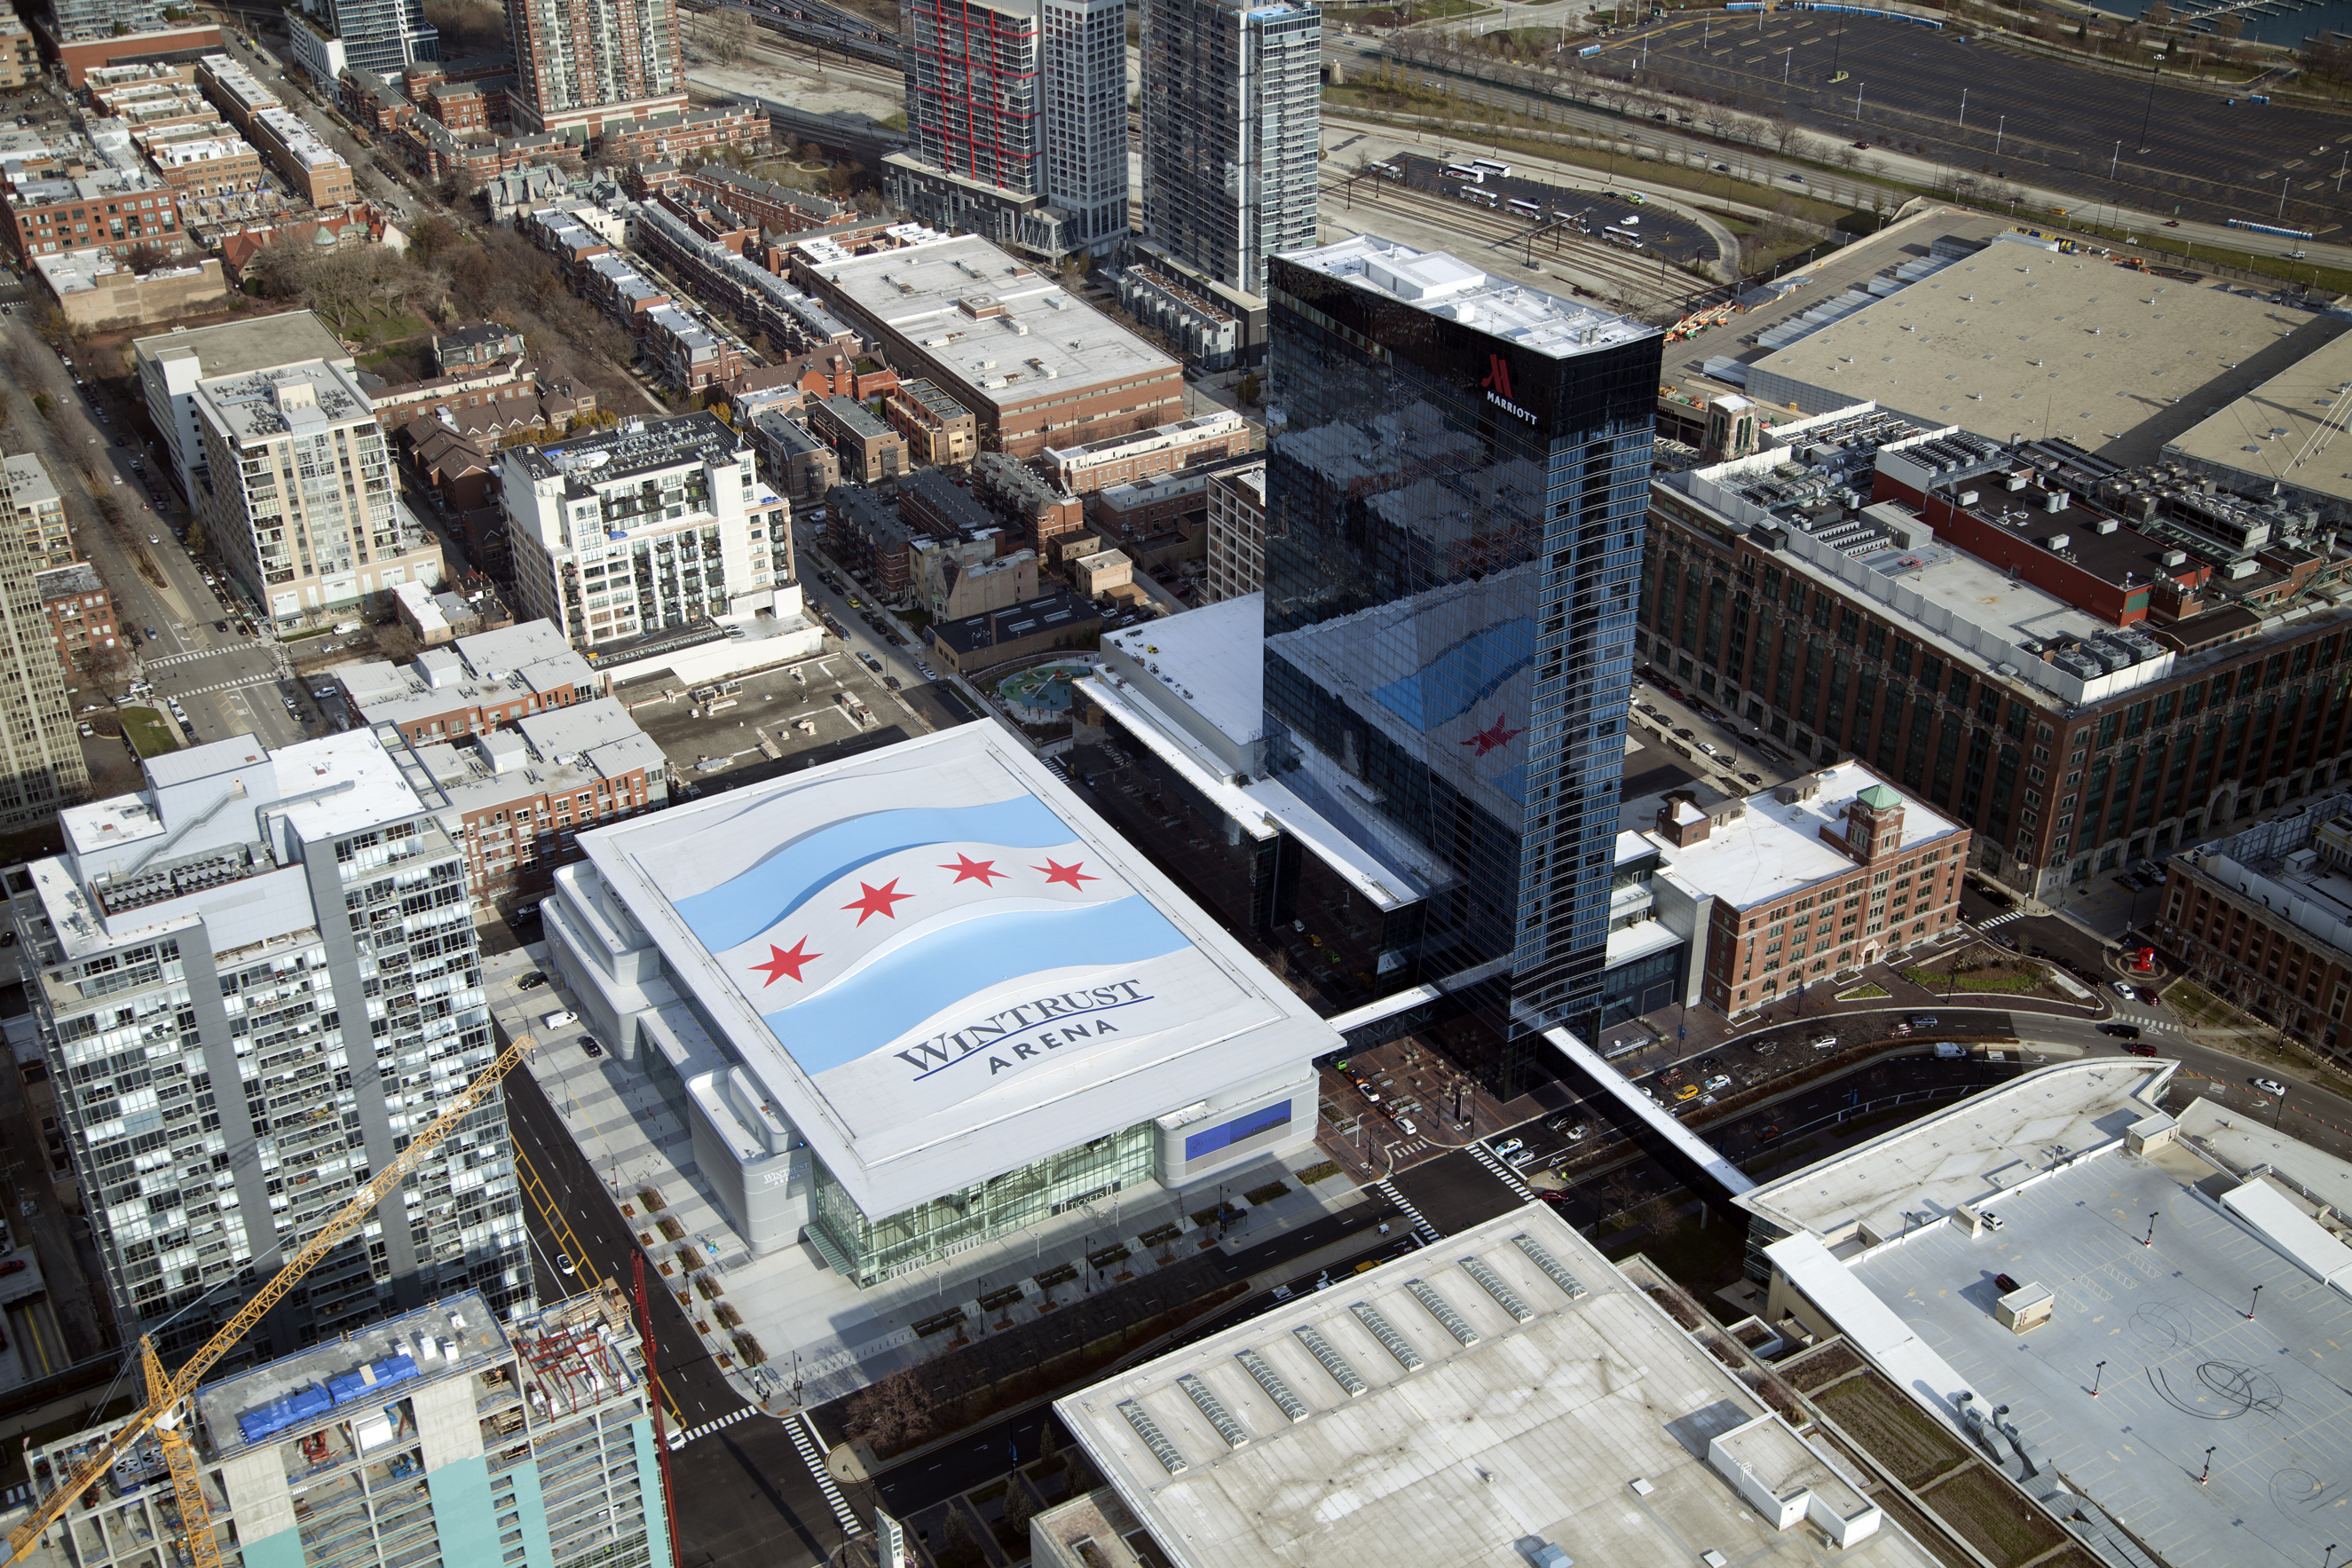 Wintrust Arena rooftop in Chicago South Loop neighborhood